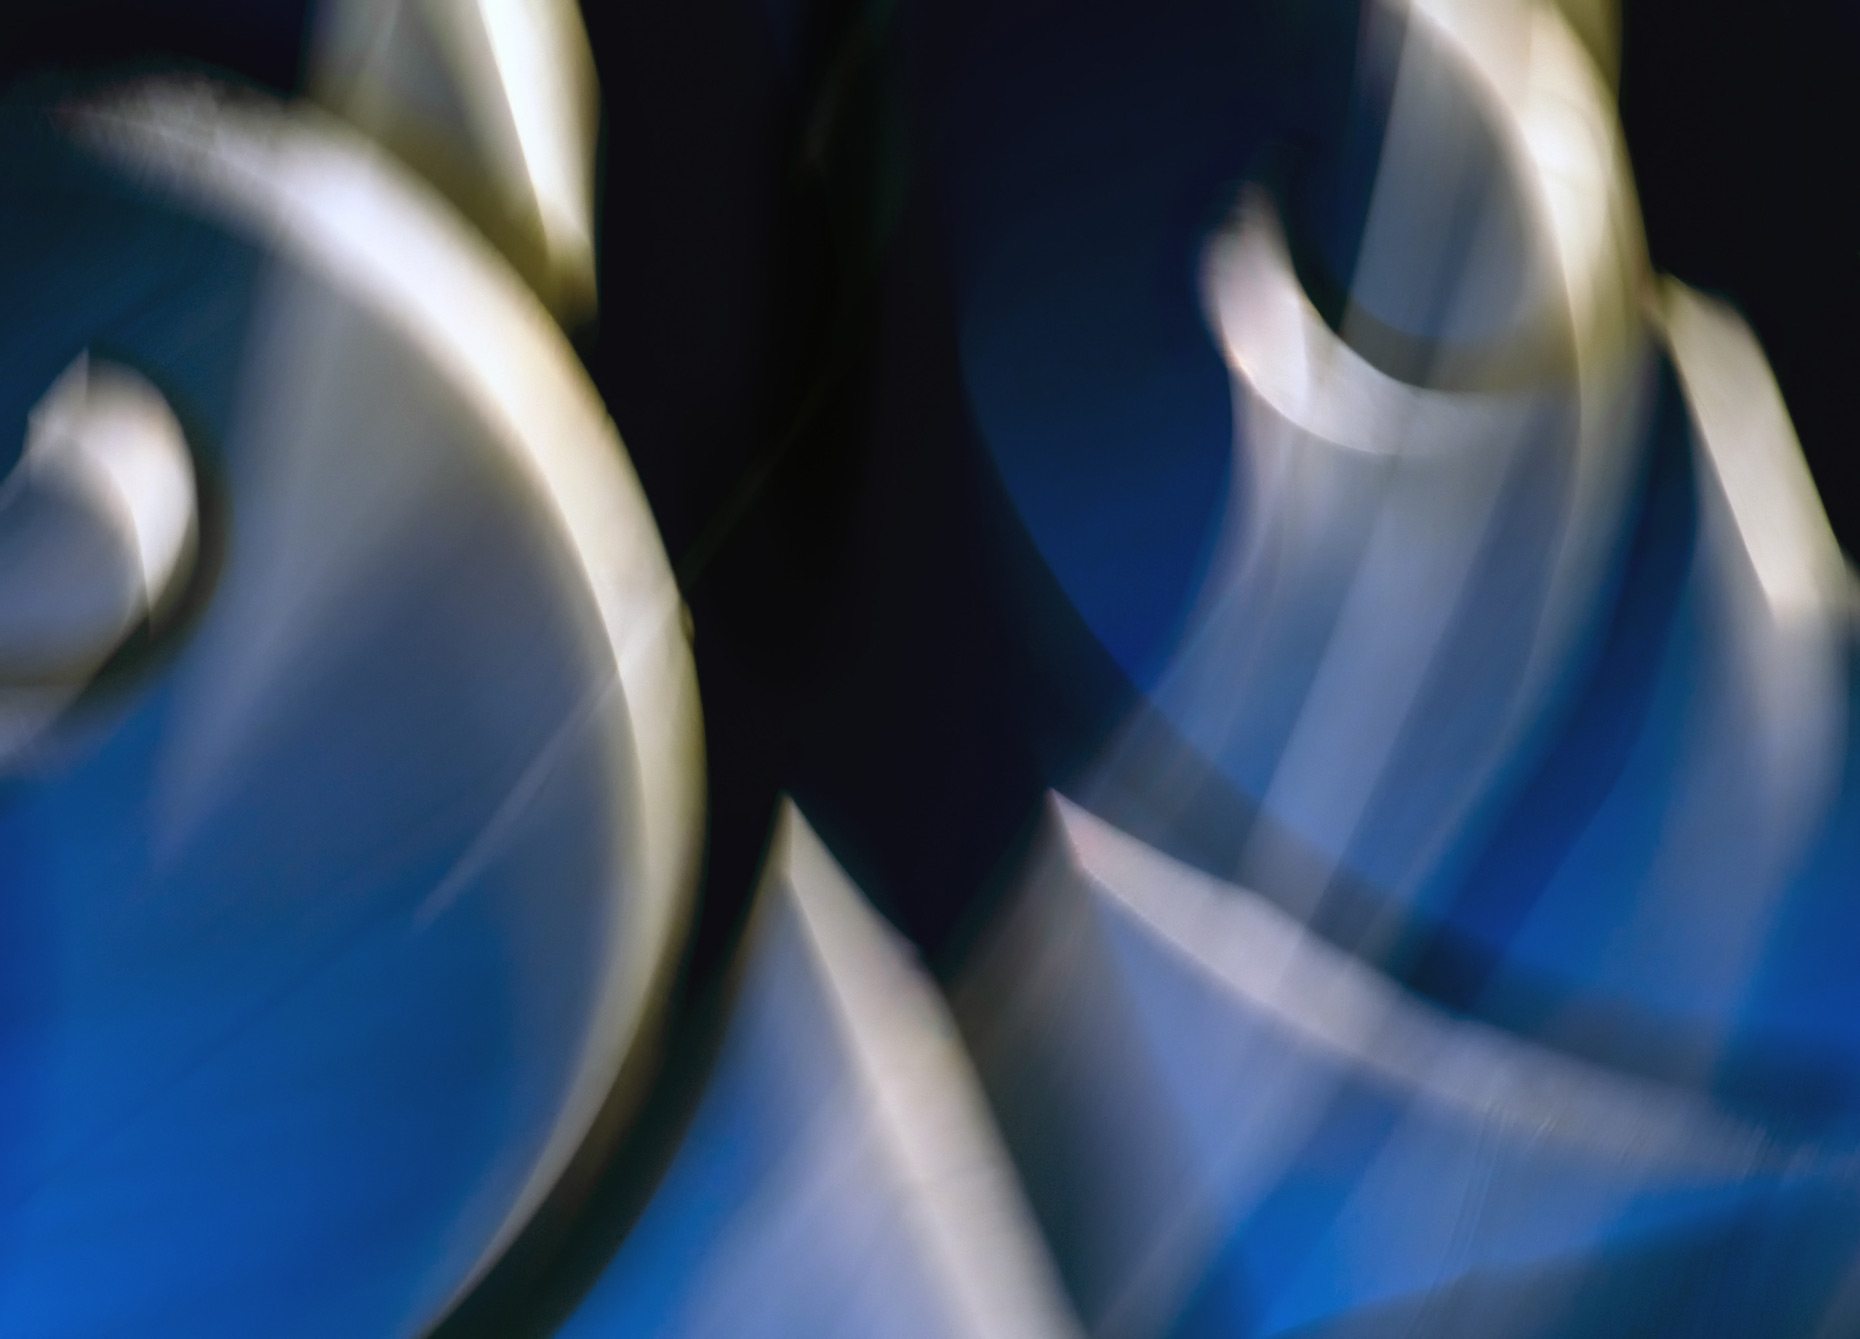 Abstract-Art-Blue-Inside-the-Note-Laria-Saunders.jpg